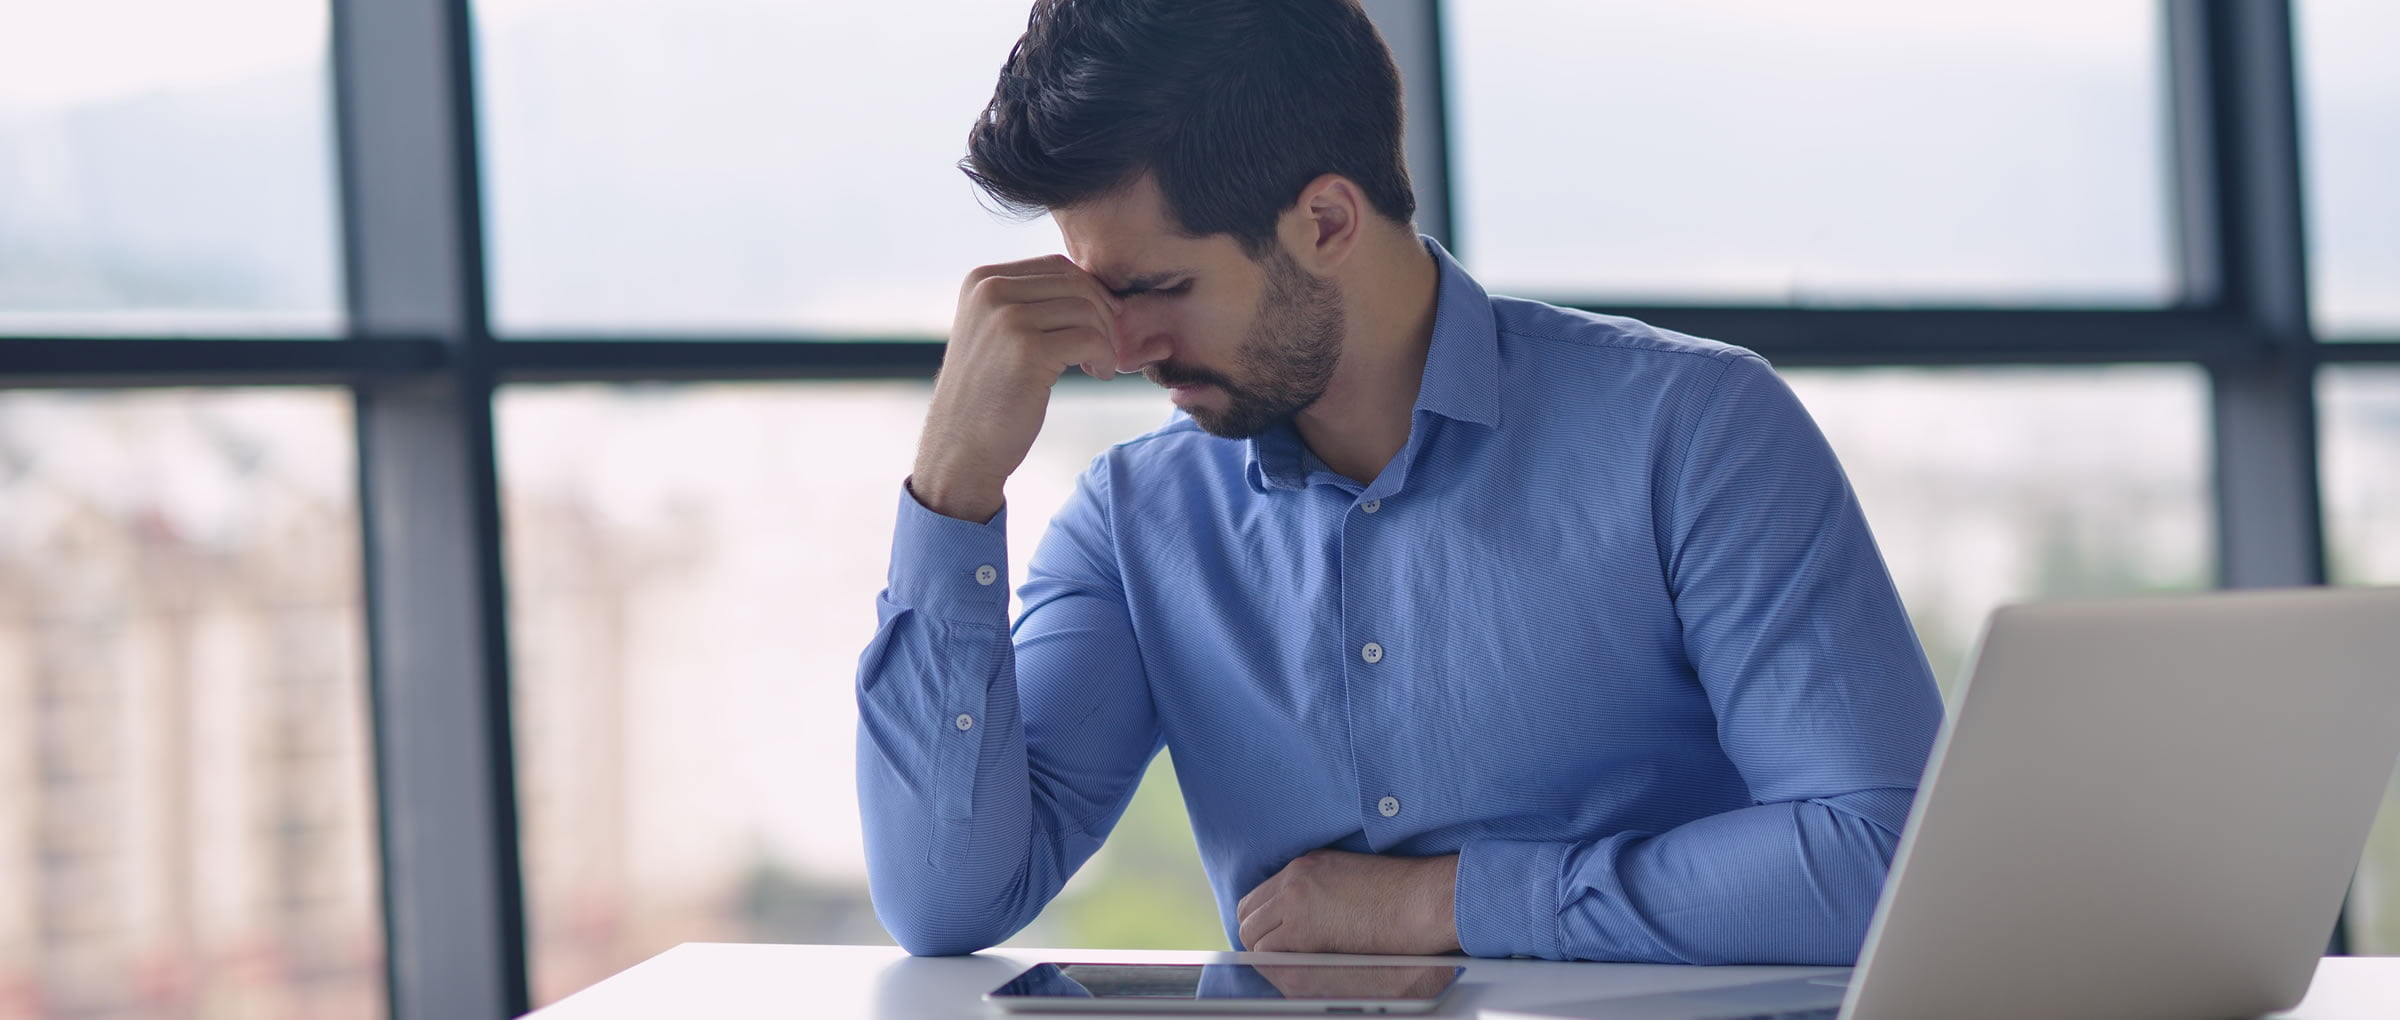 societys problem with dealing with stress The stress of workplace discrimination programs also offer more holistic approaches to dealing with workplace think they're the problem related.